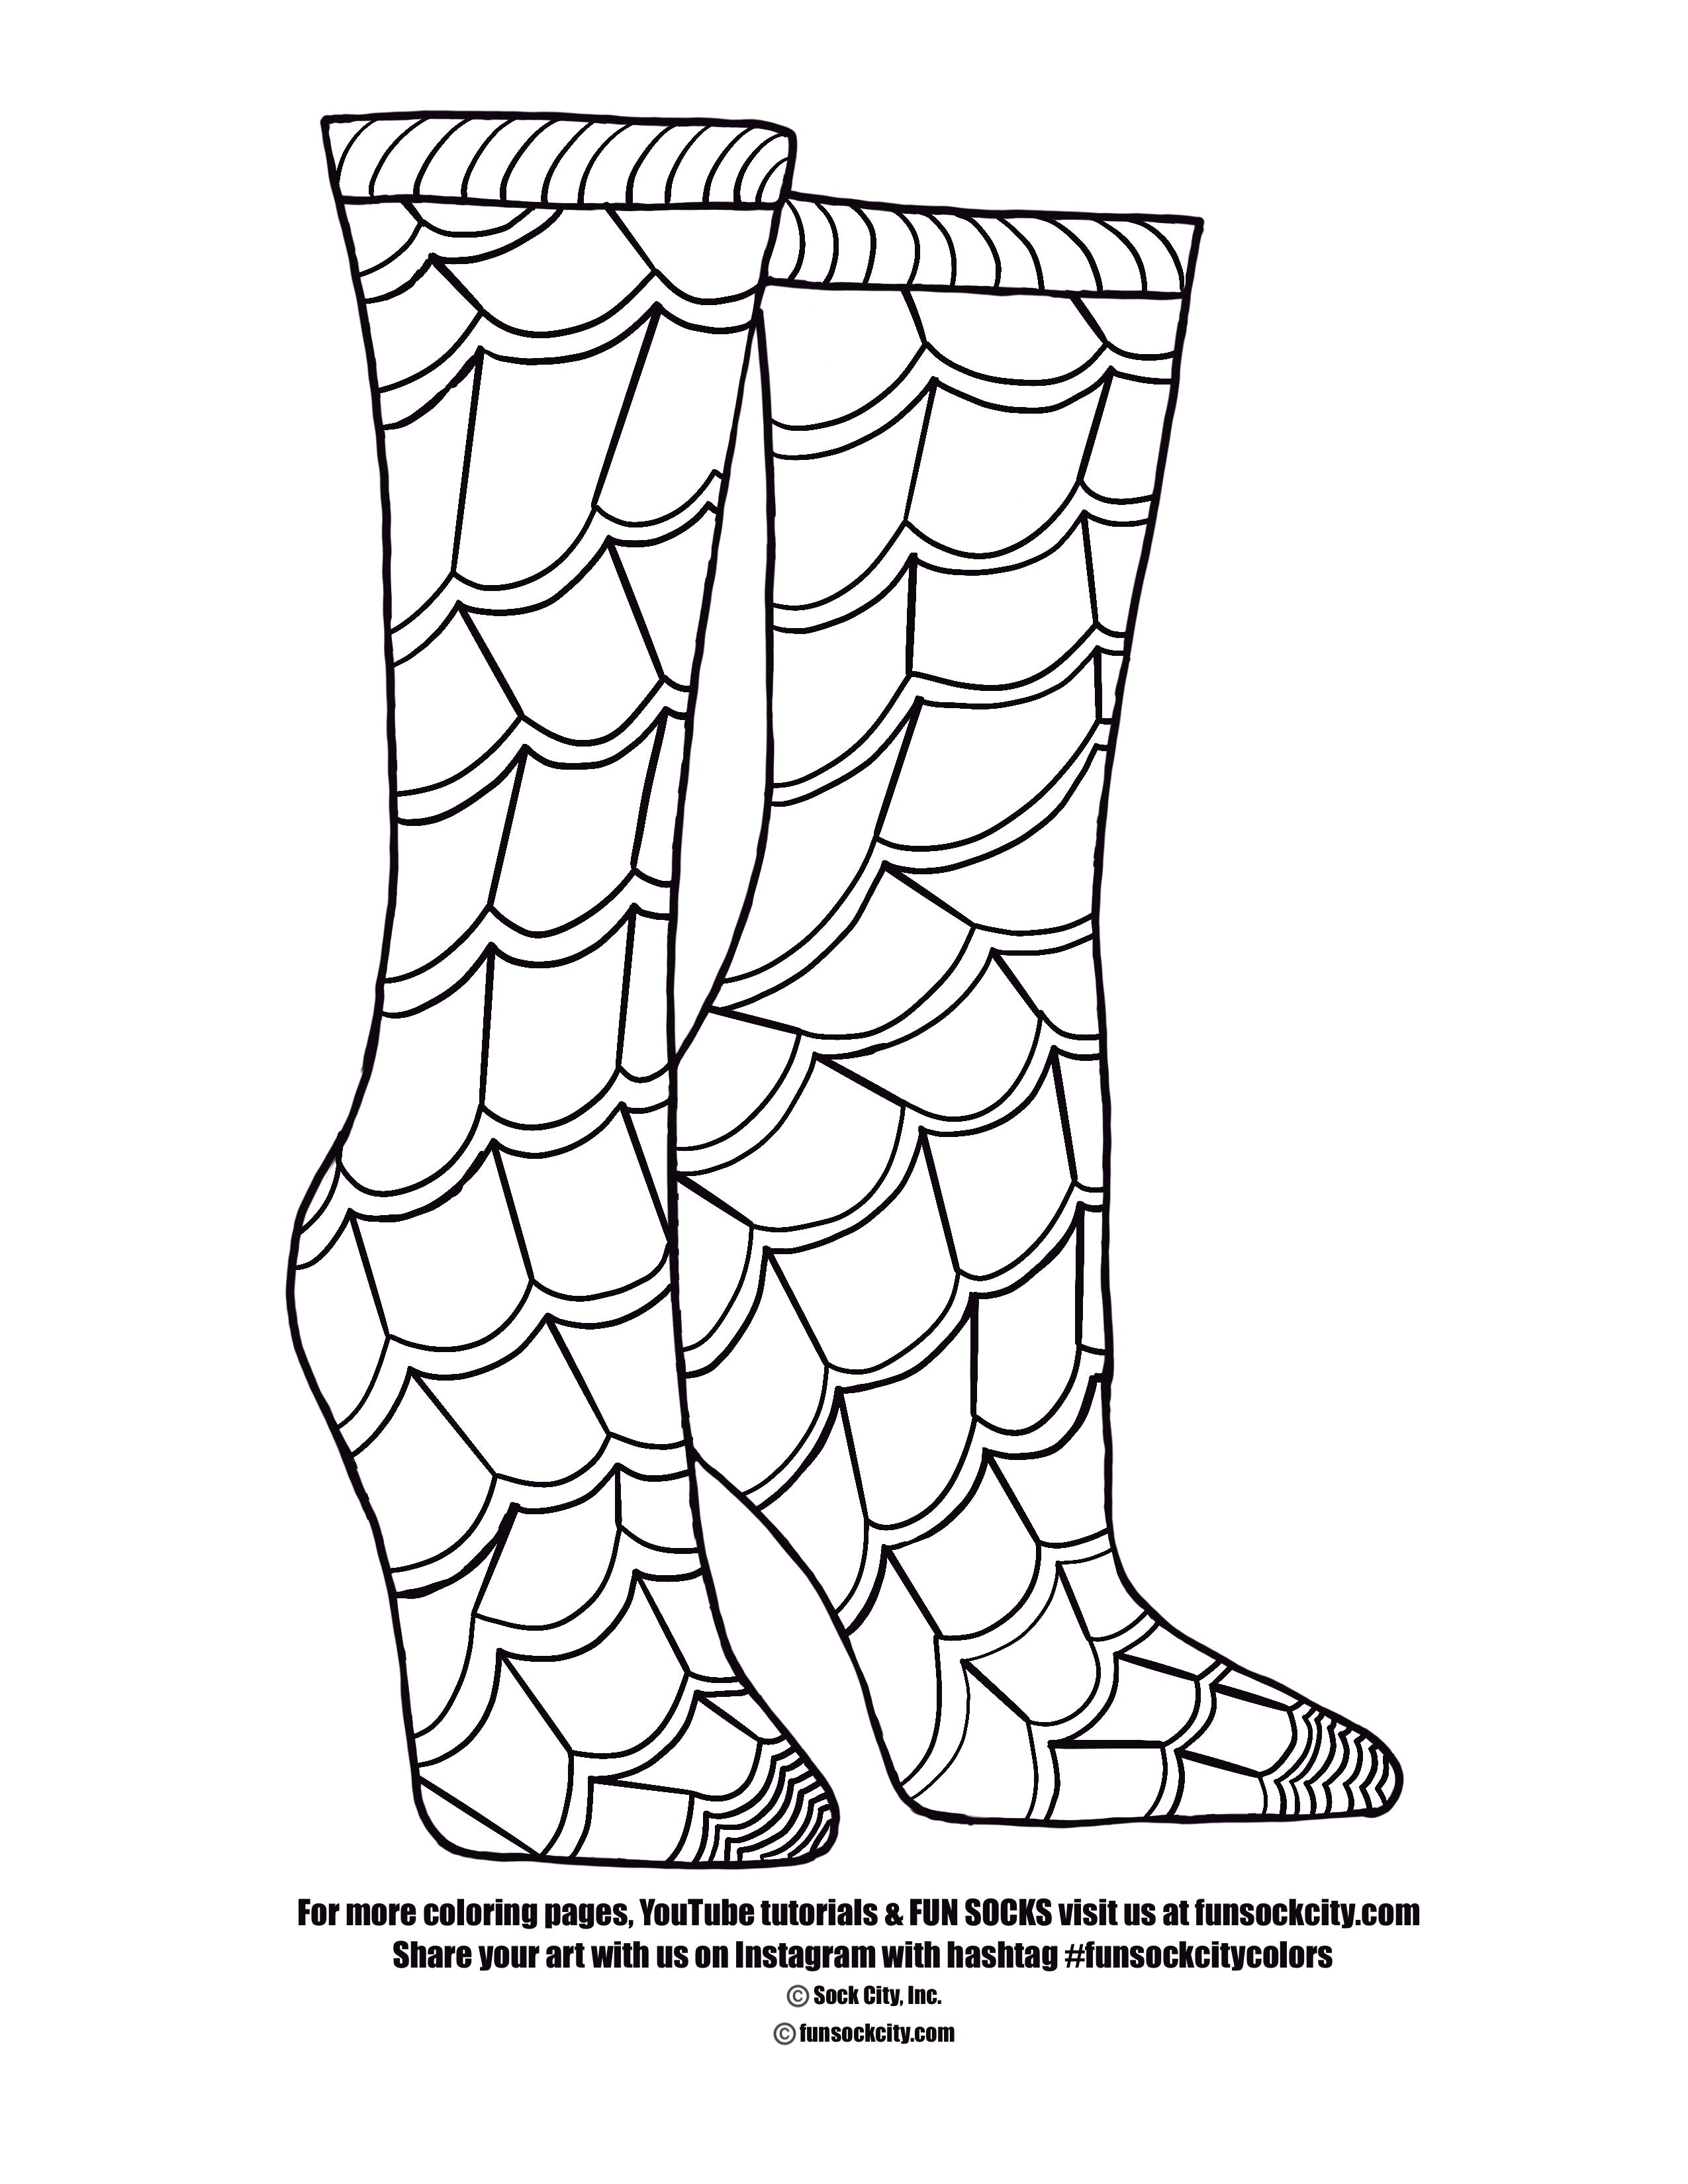 Spiderweb Sock Coloring Page